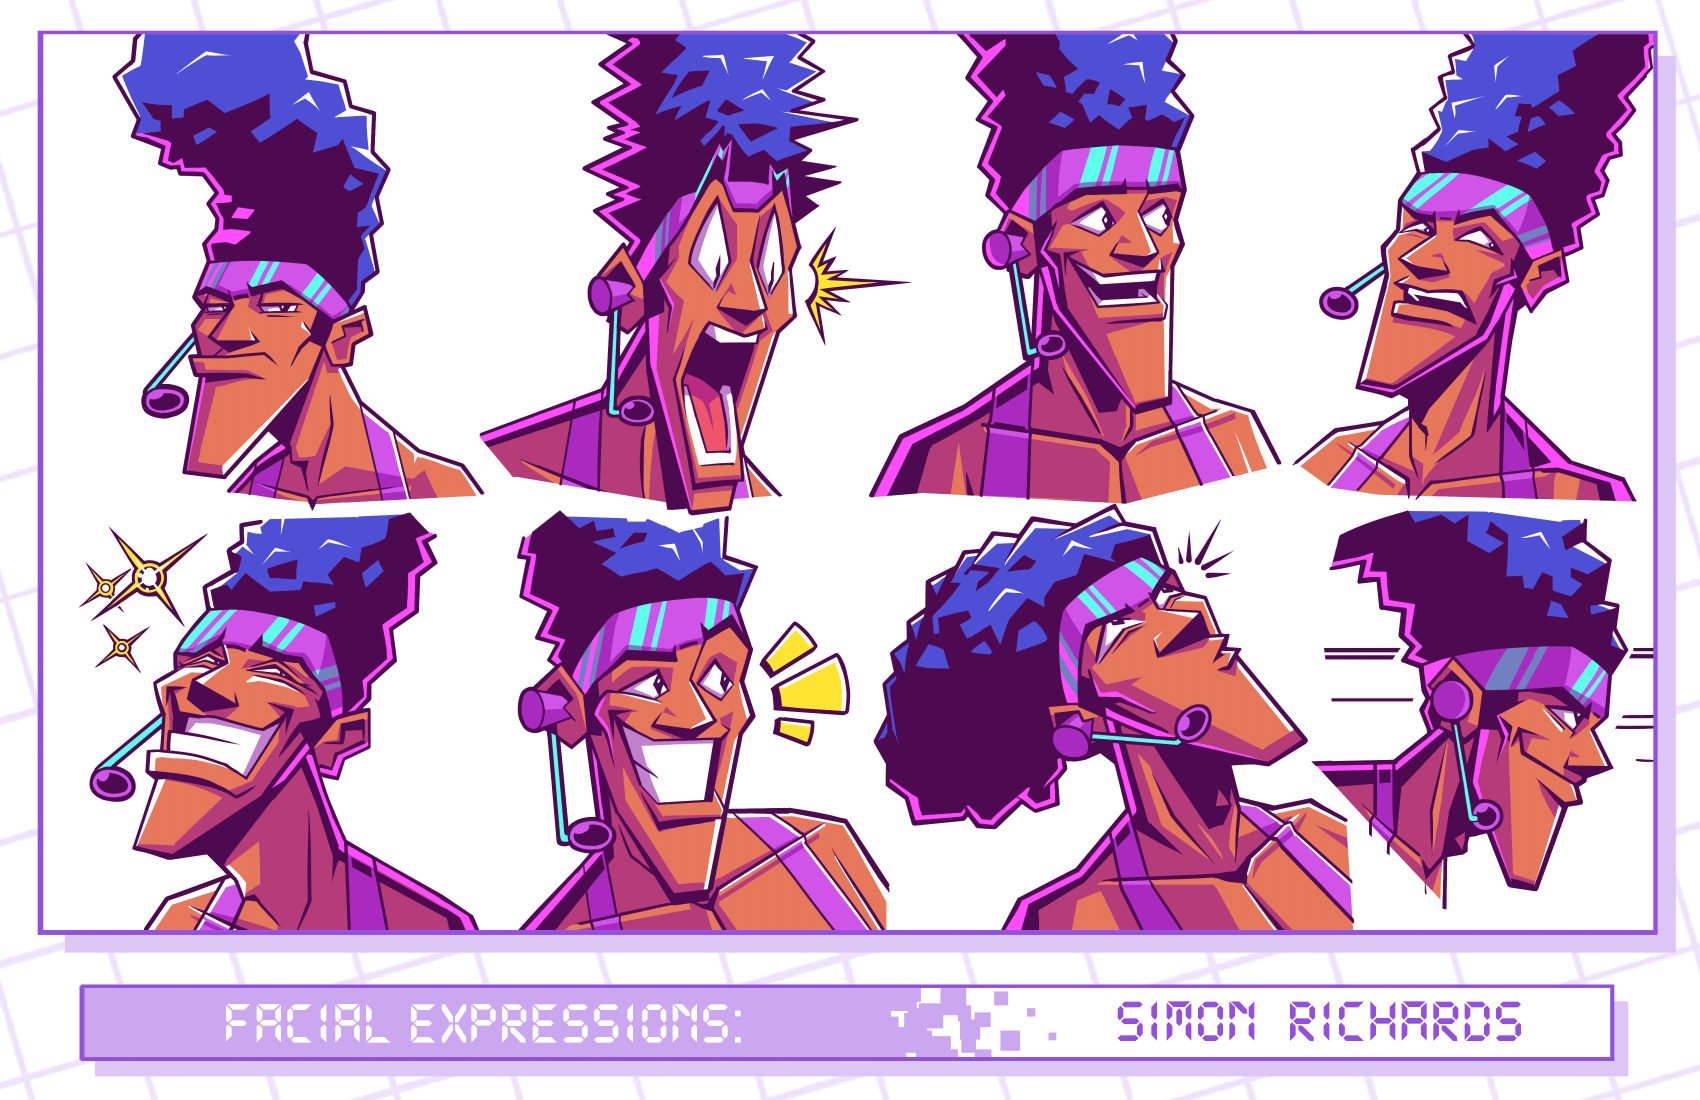 8ta_pose_expressions_simon2.png